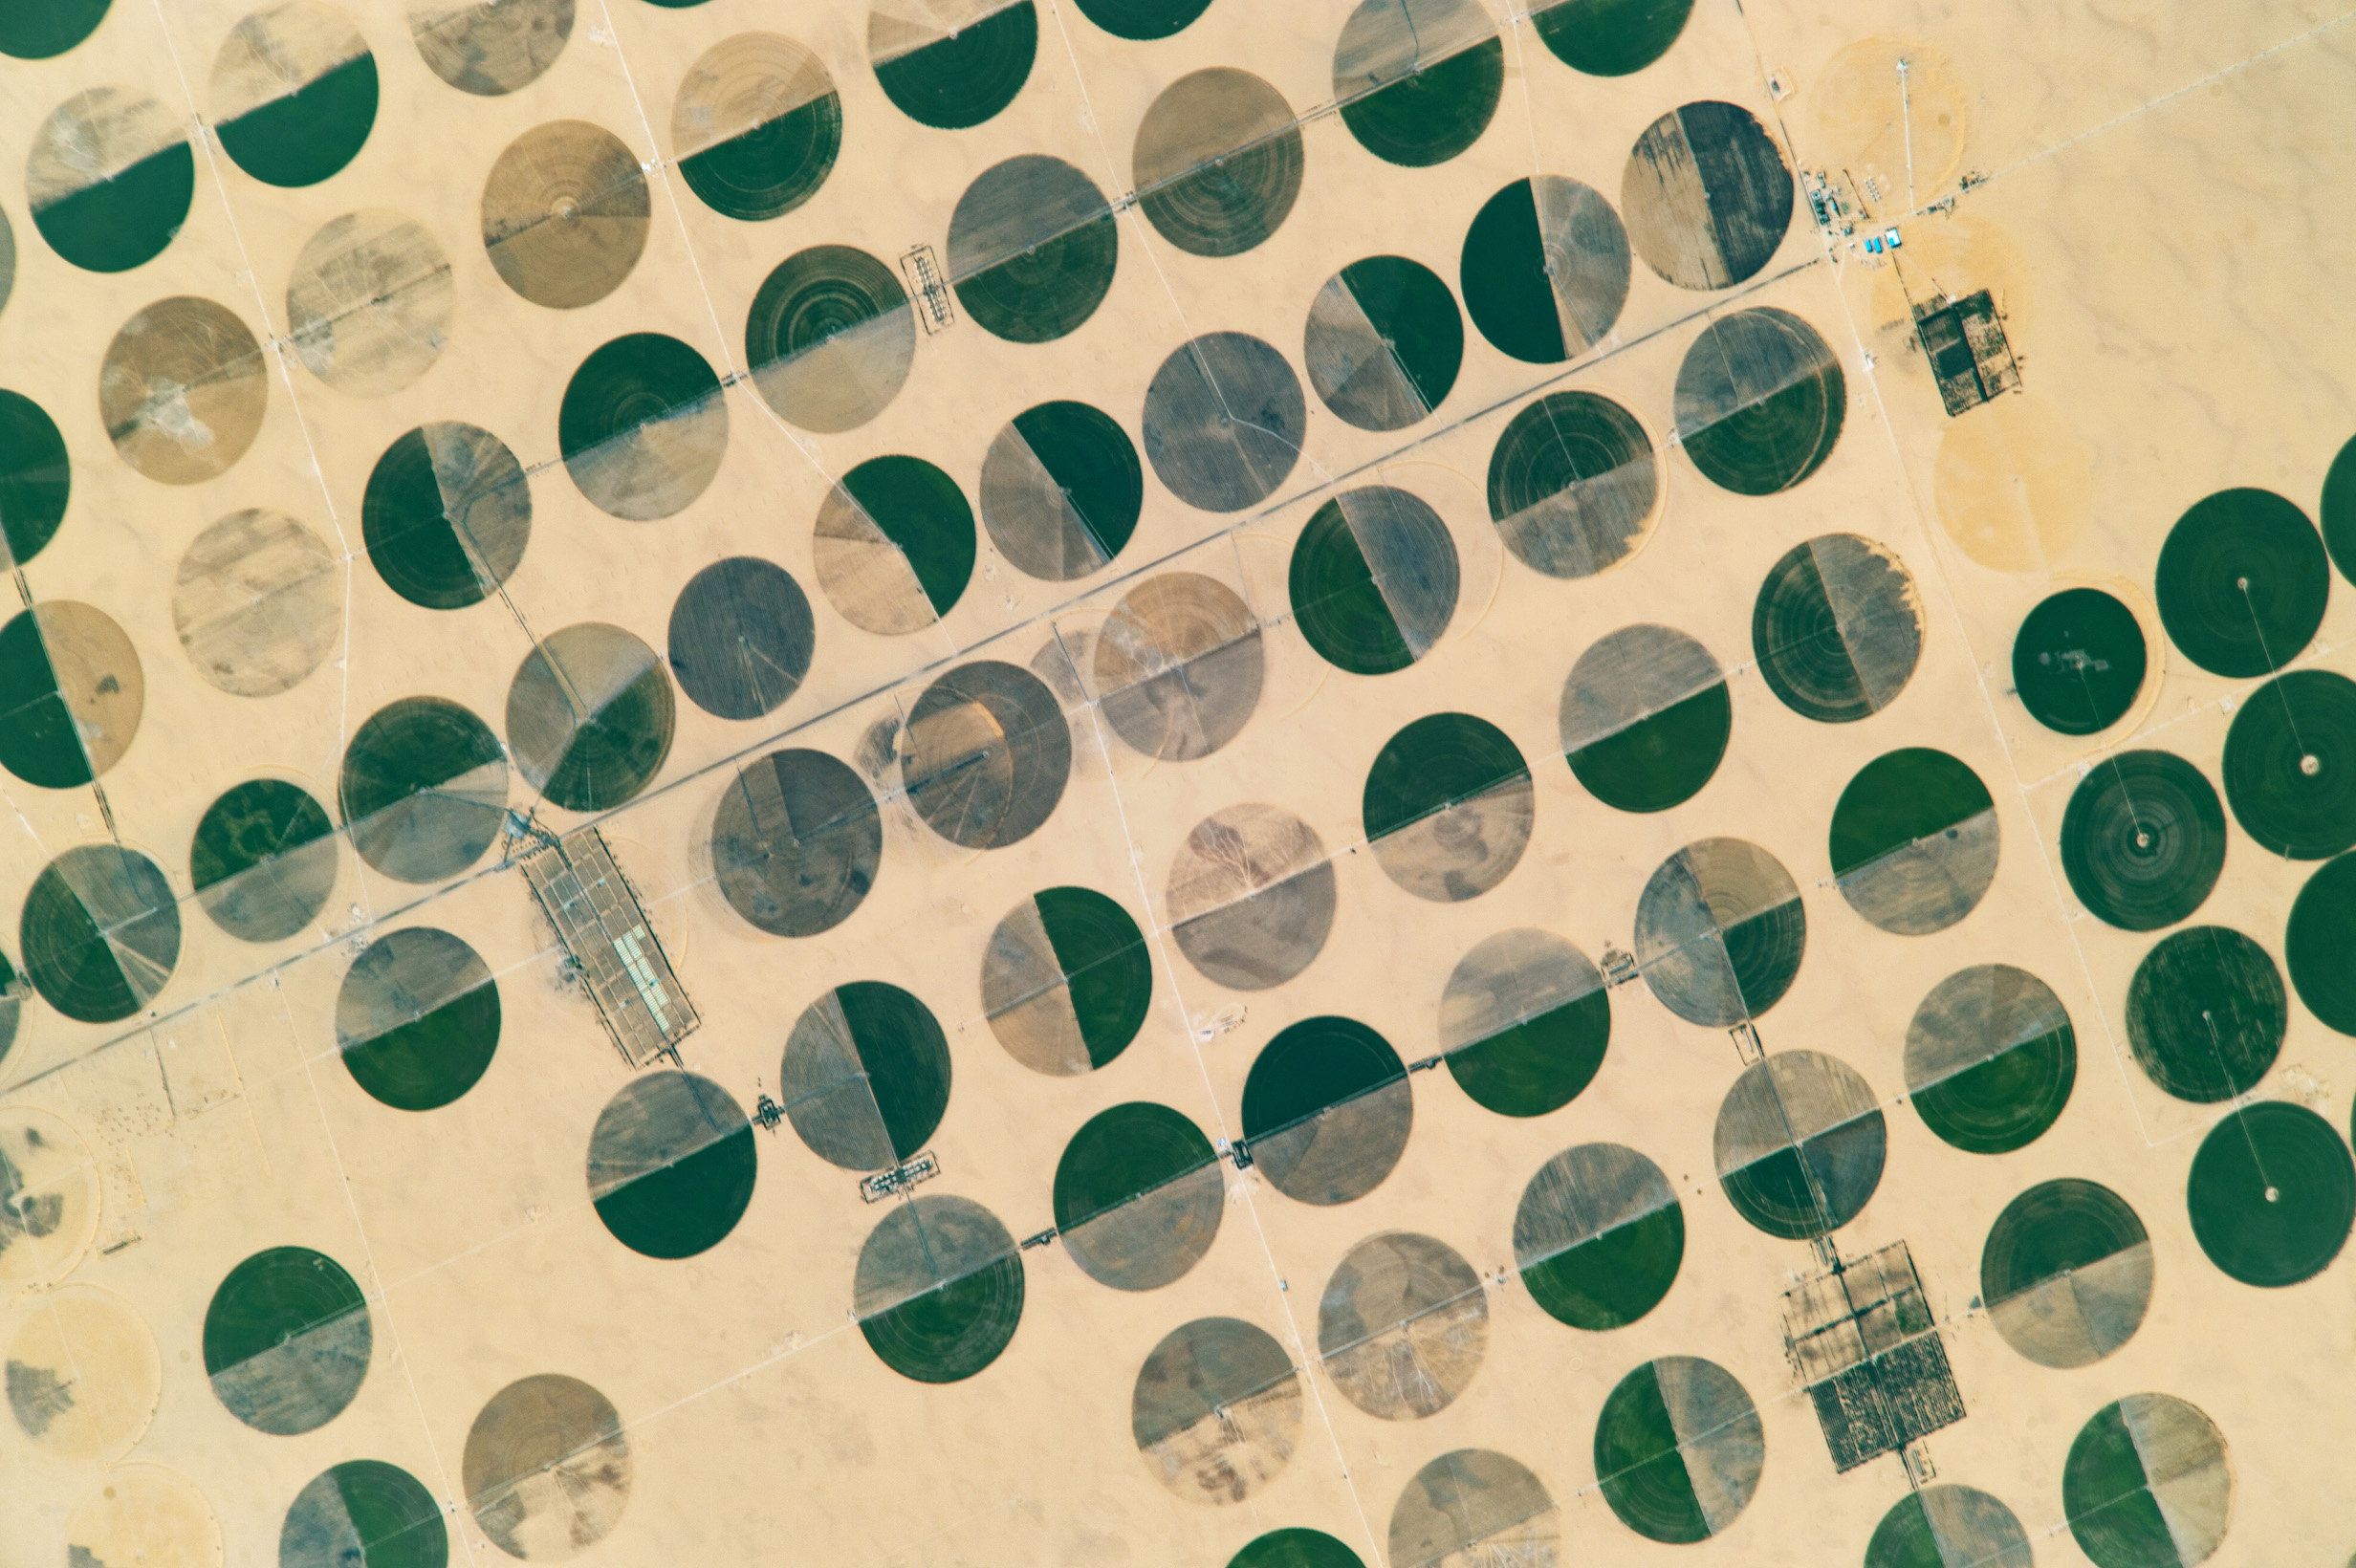 Today's Image of the Day comes thanks to the NASA Earth Observatory and features a look at crop circles in Sharq El Owainat in Egypt.